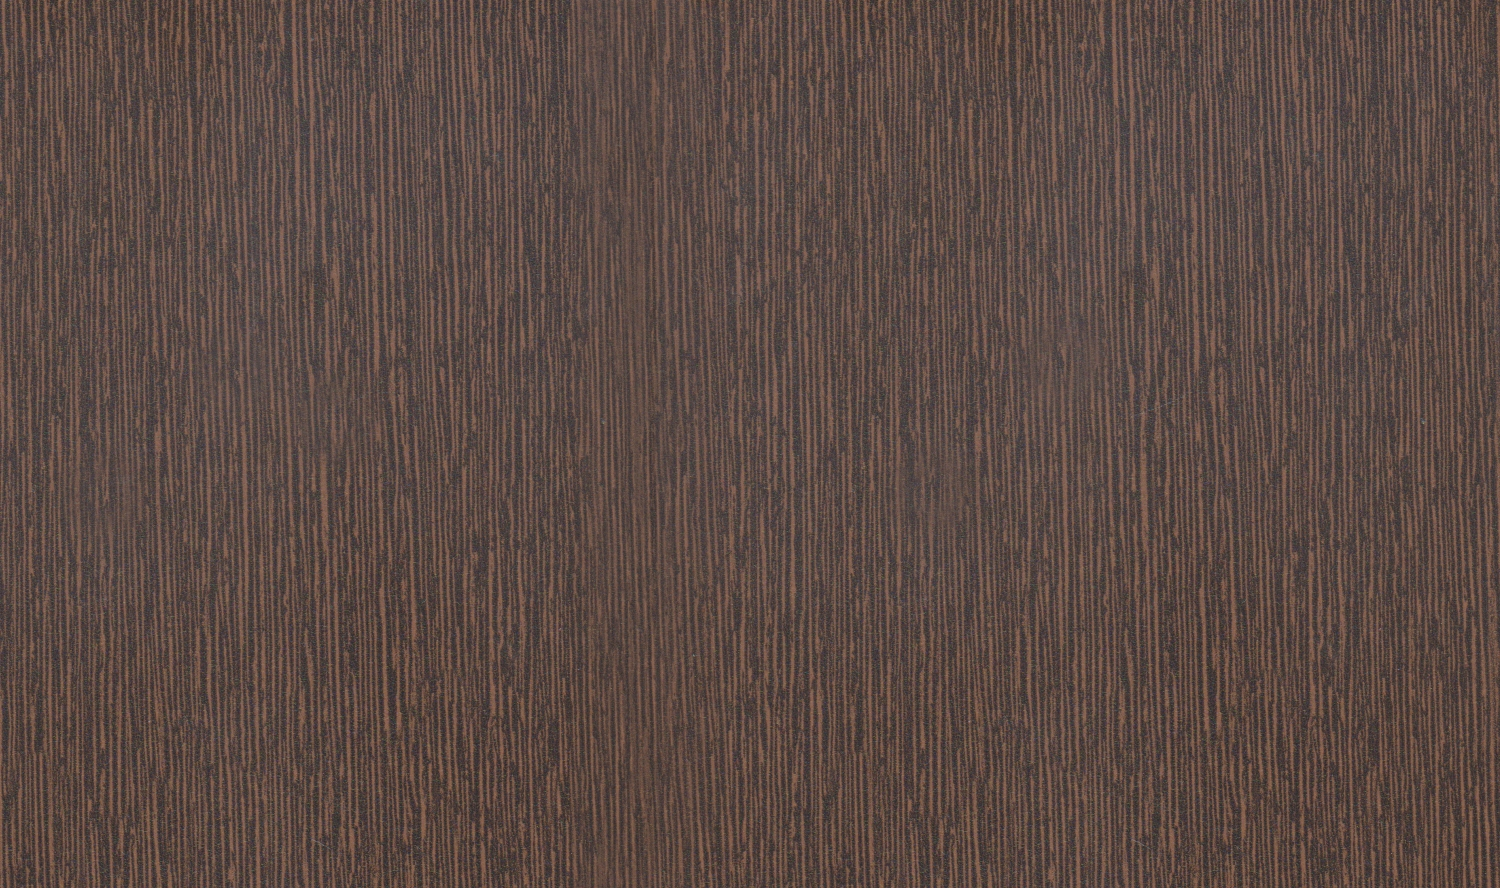 Sonata Range of Latest Laminate Designs - Sundek International